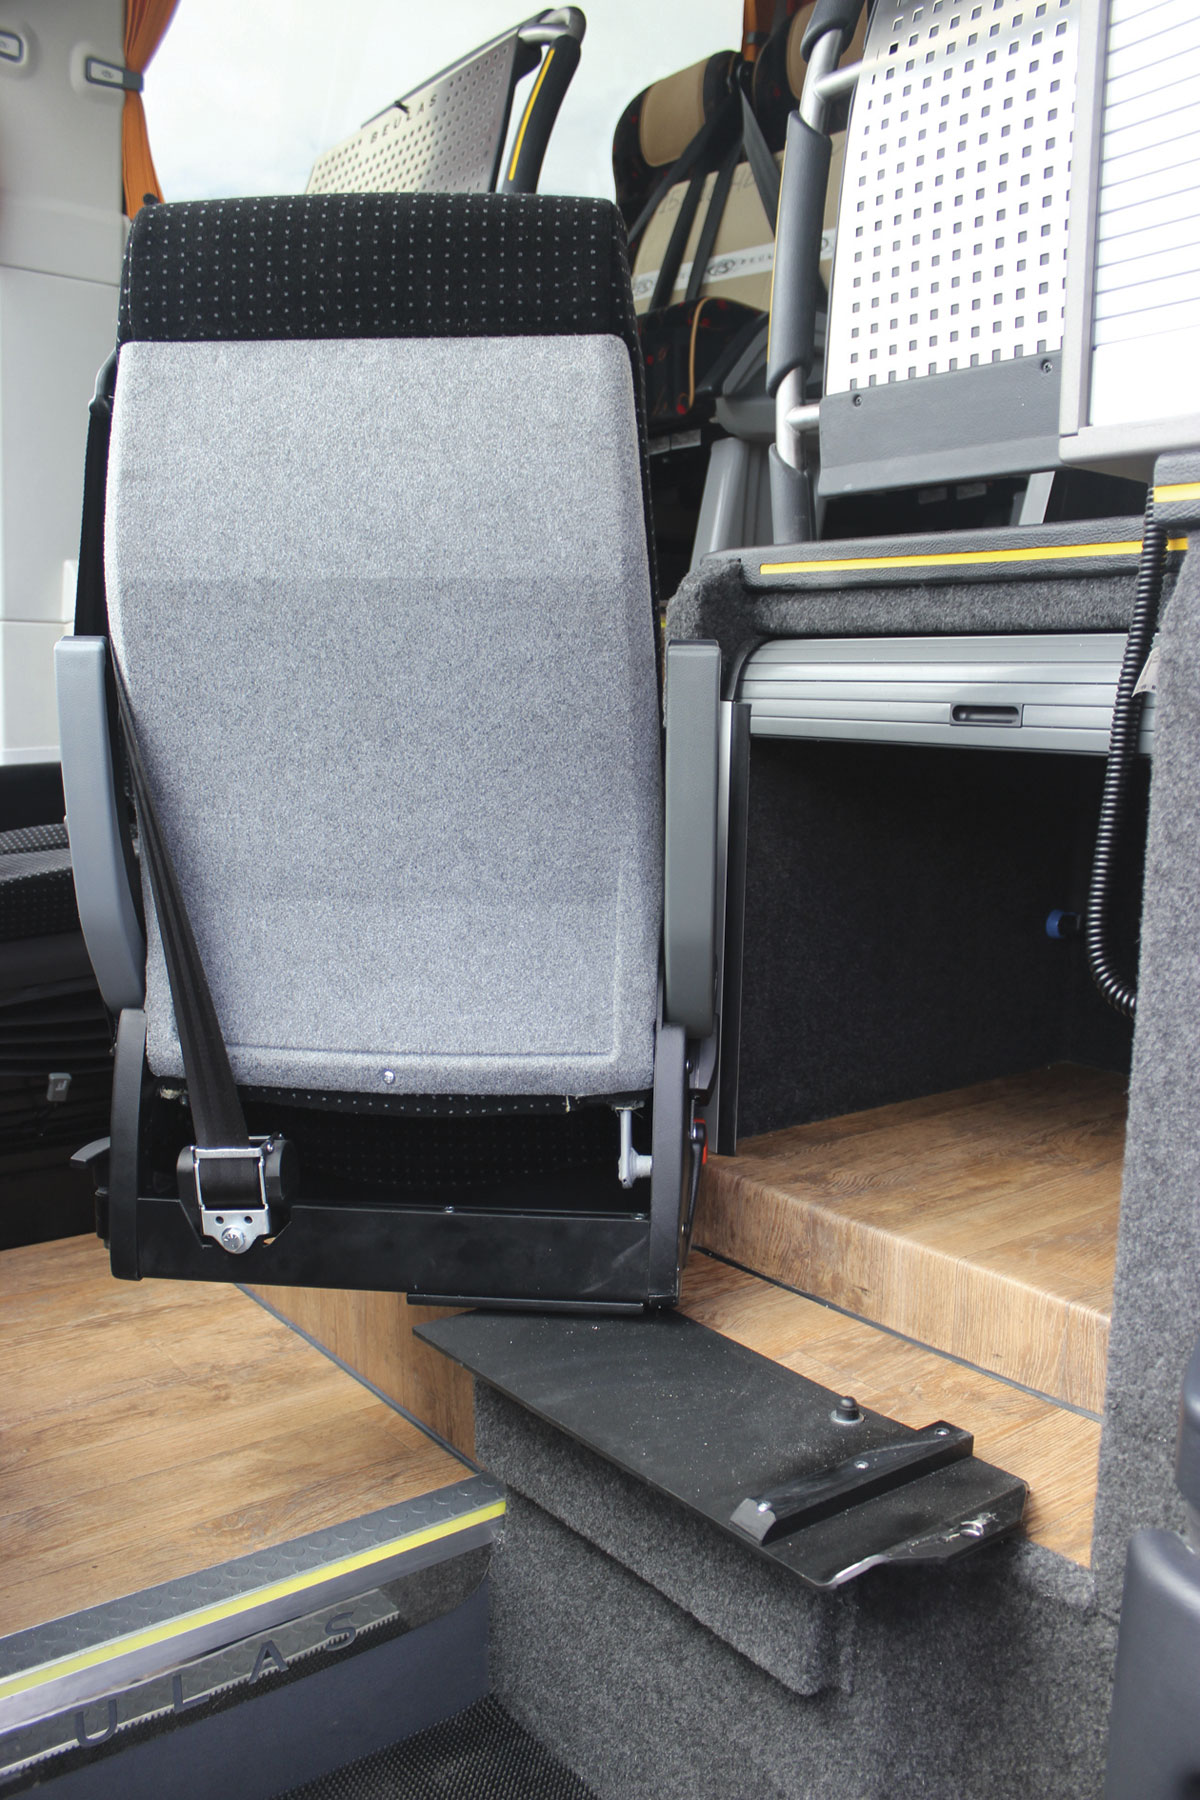 The courier seat swivels to provide better access to the locker behind